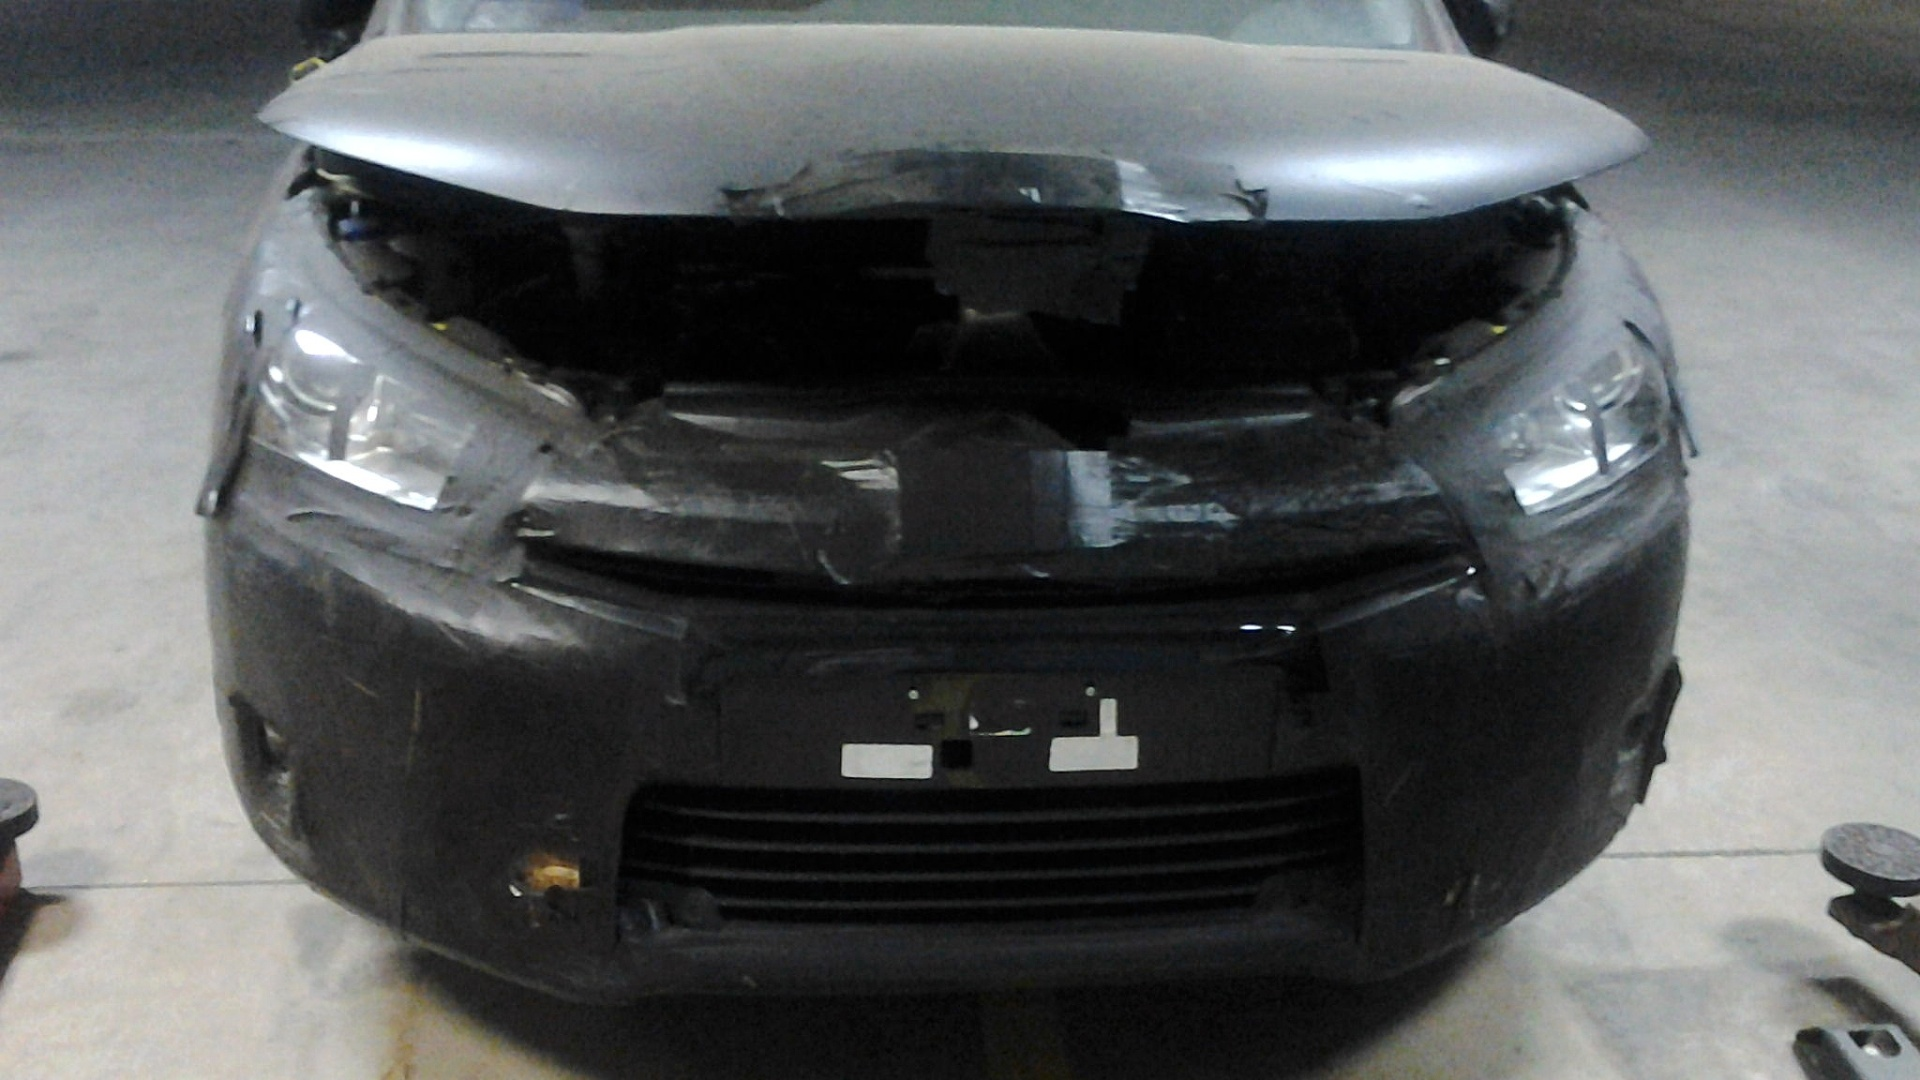 Novo Citroën C4 hatch é flagrado em oficina no interior paulista